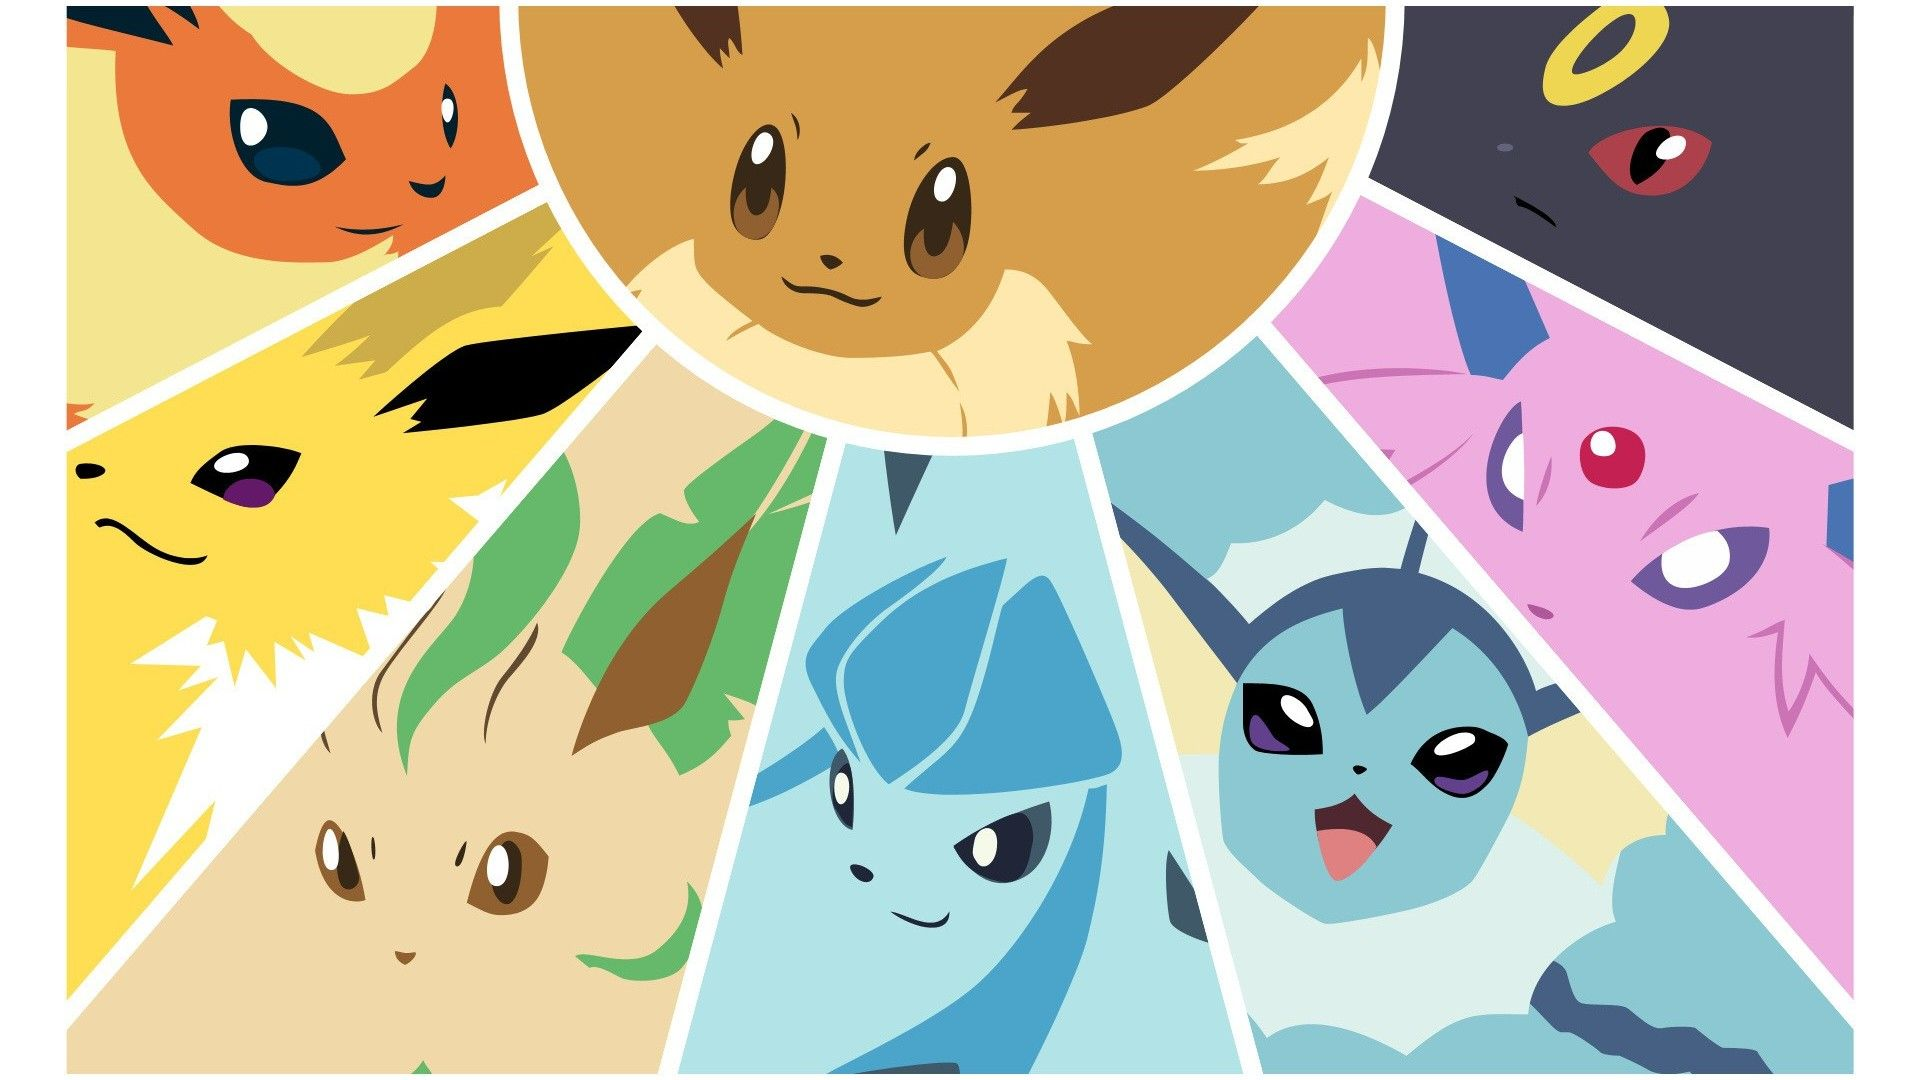 Pokemon Flareon Eevee Vaporeon Jolteon Eeveelutions Leafeon Wallpaper Eevee Wallpaper Pokemon Flareon Eevee Evolutions